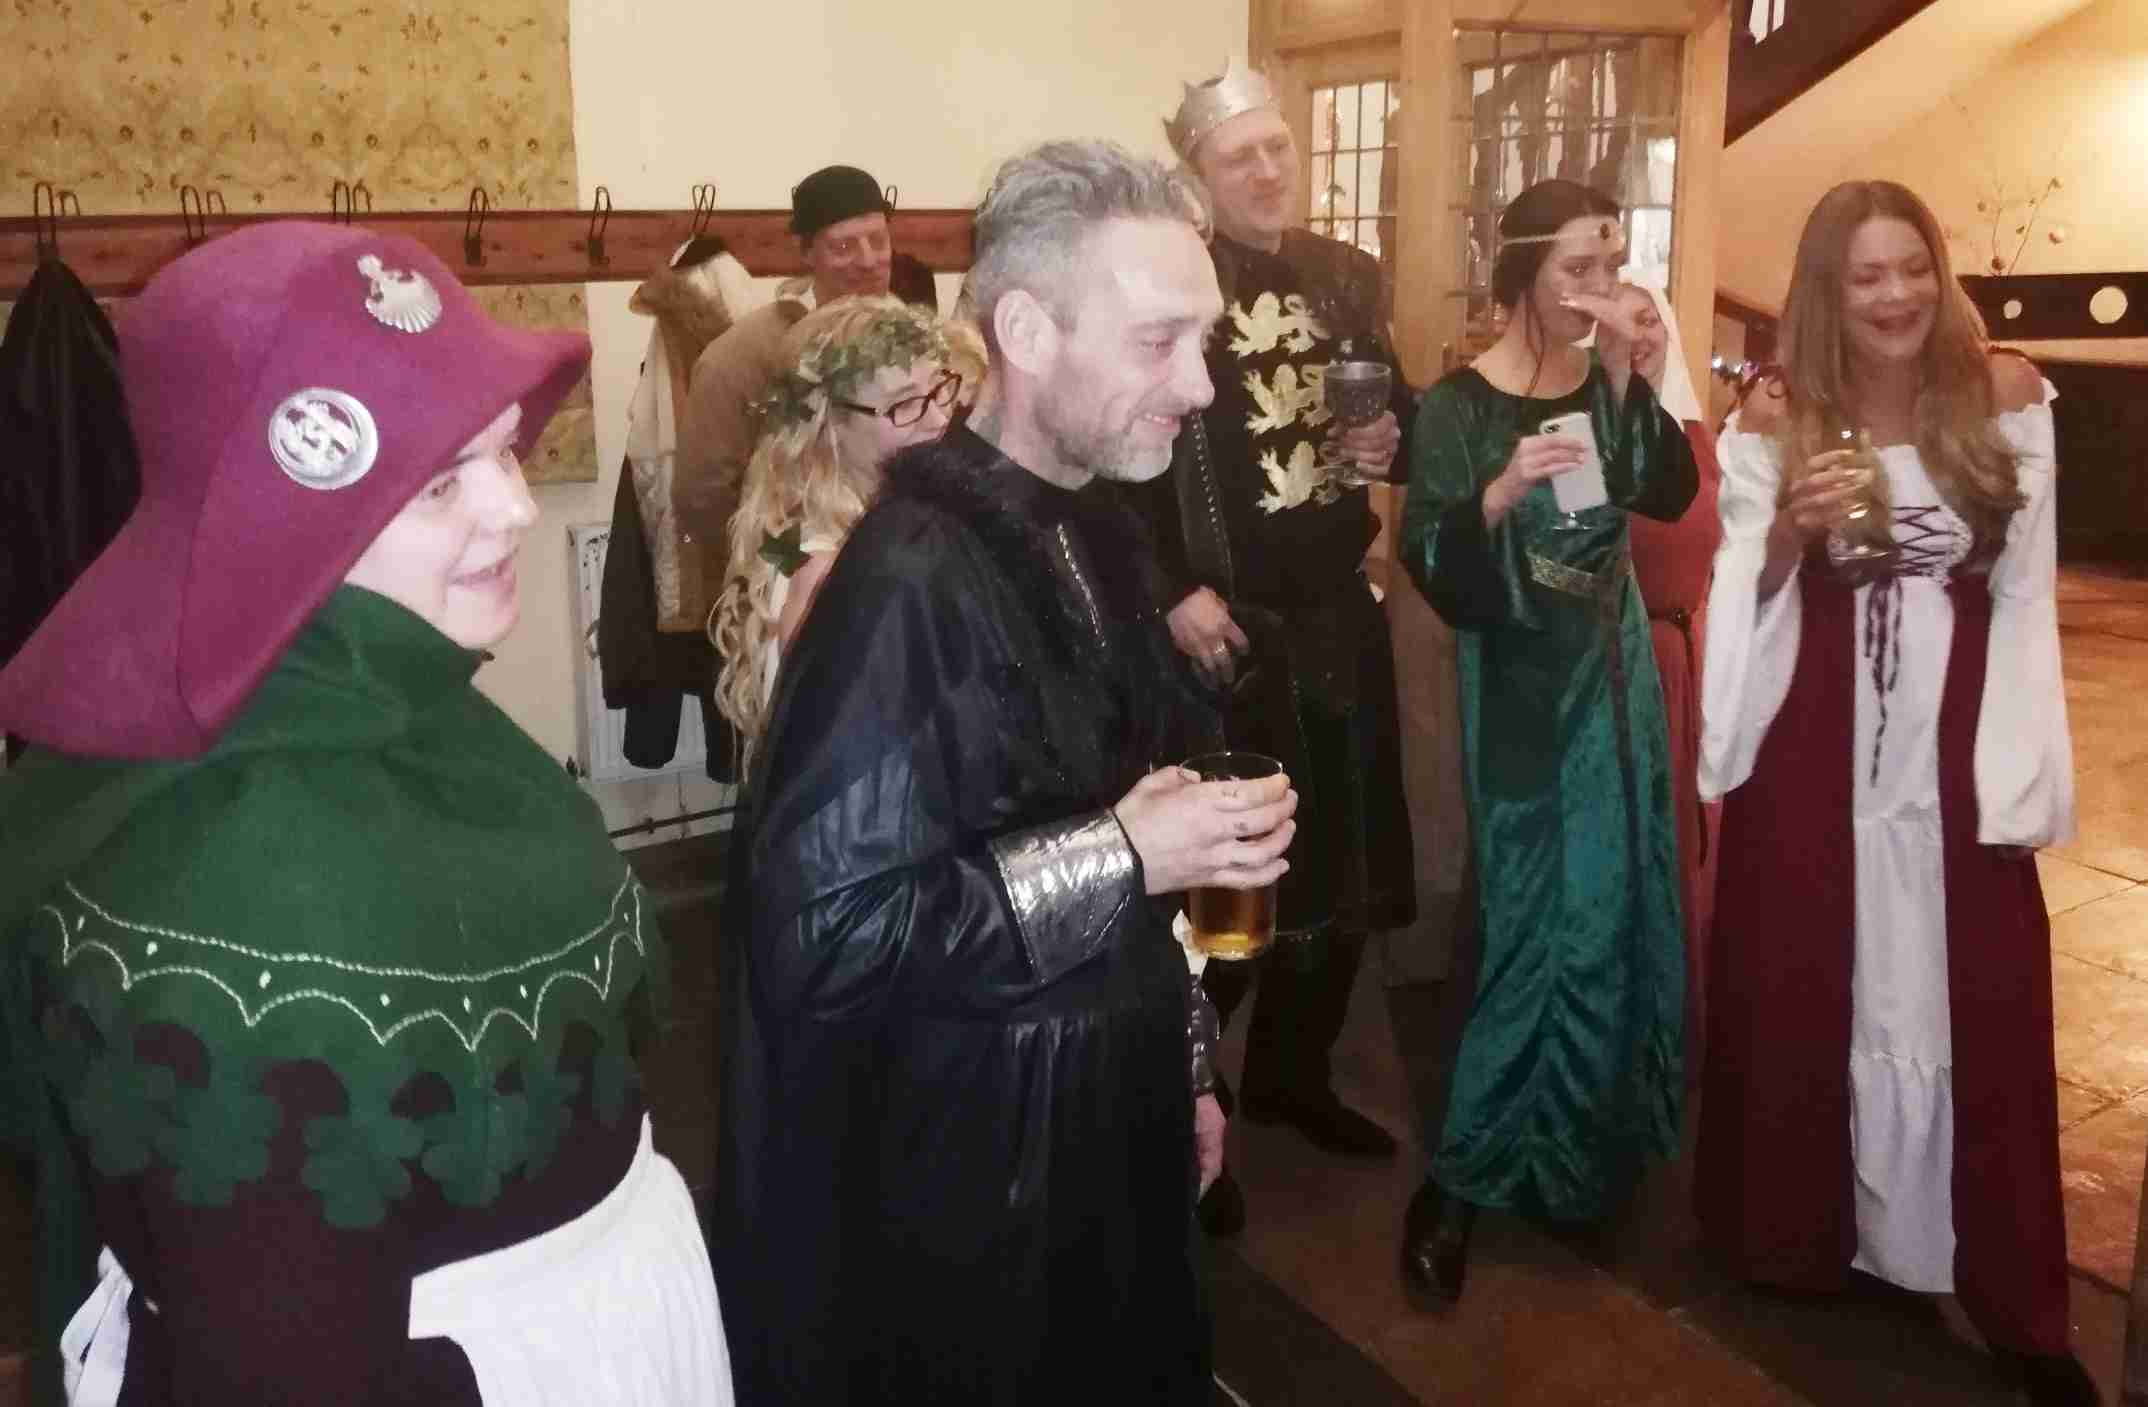 Party guests in medieval costume waiting to apple bob